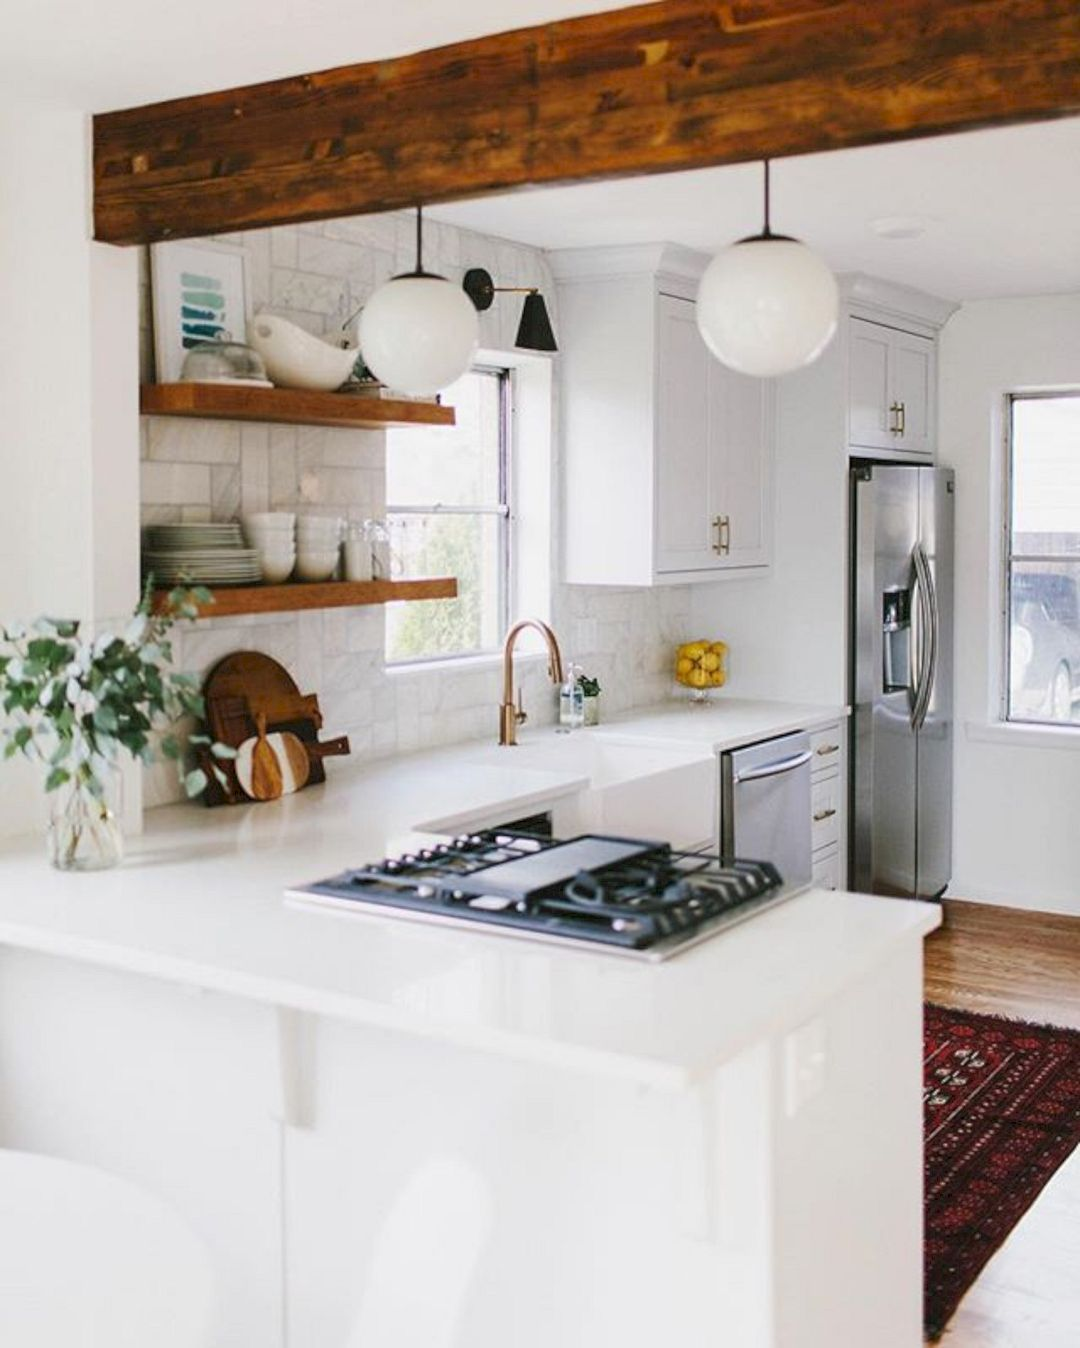 light and bright compact kitchen   TK   Pinterest   Kitchens, Small ...